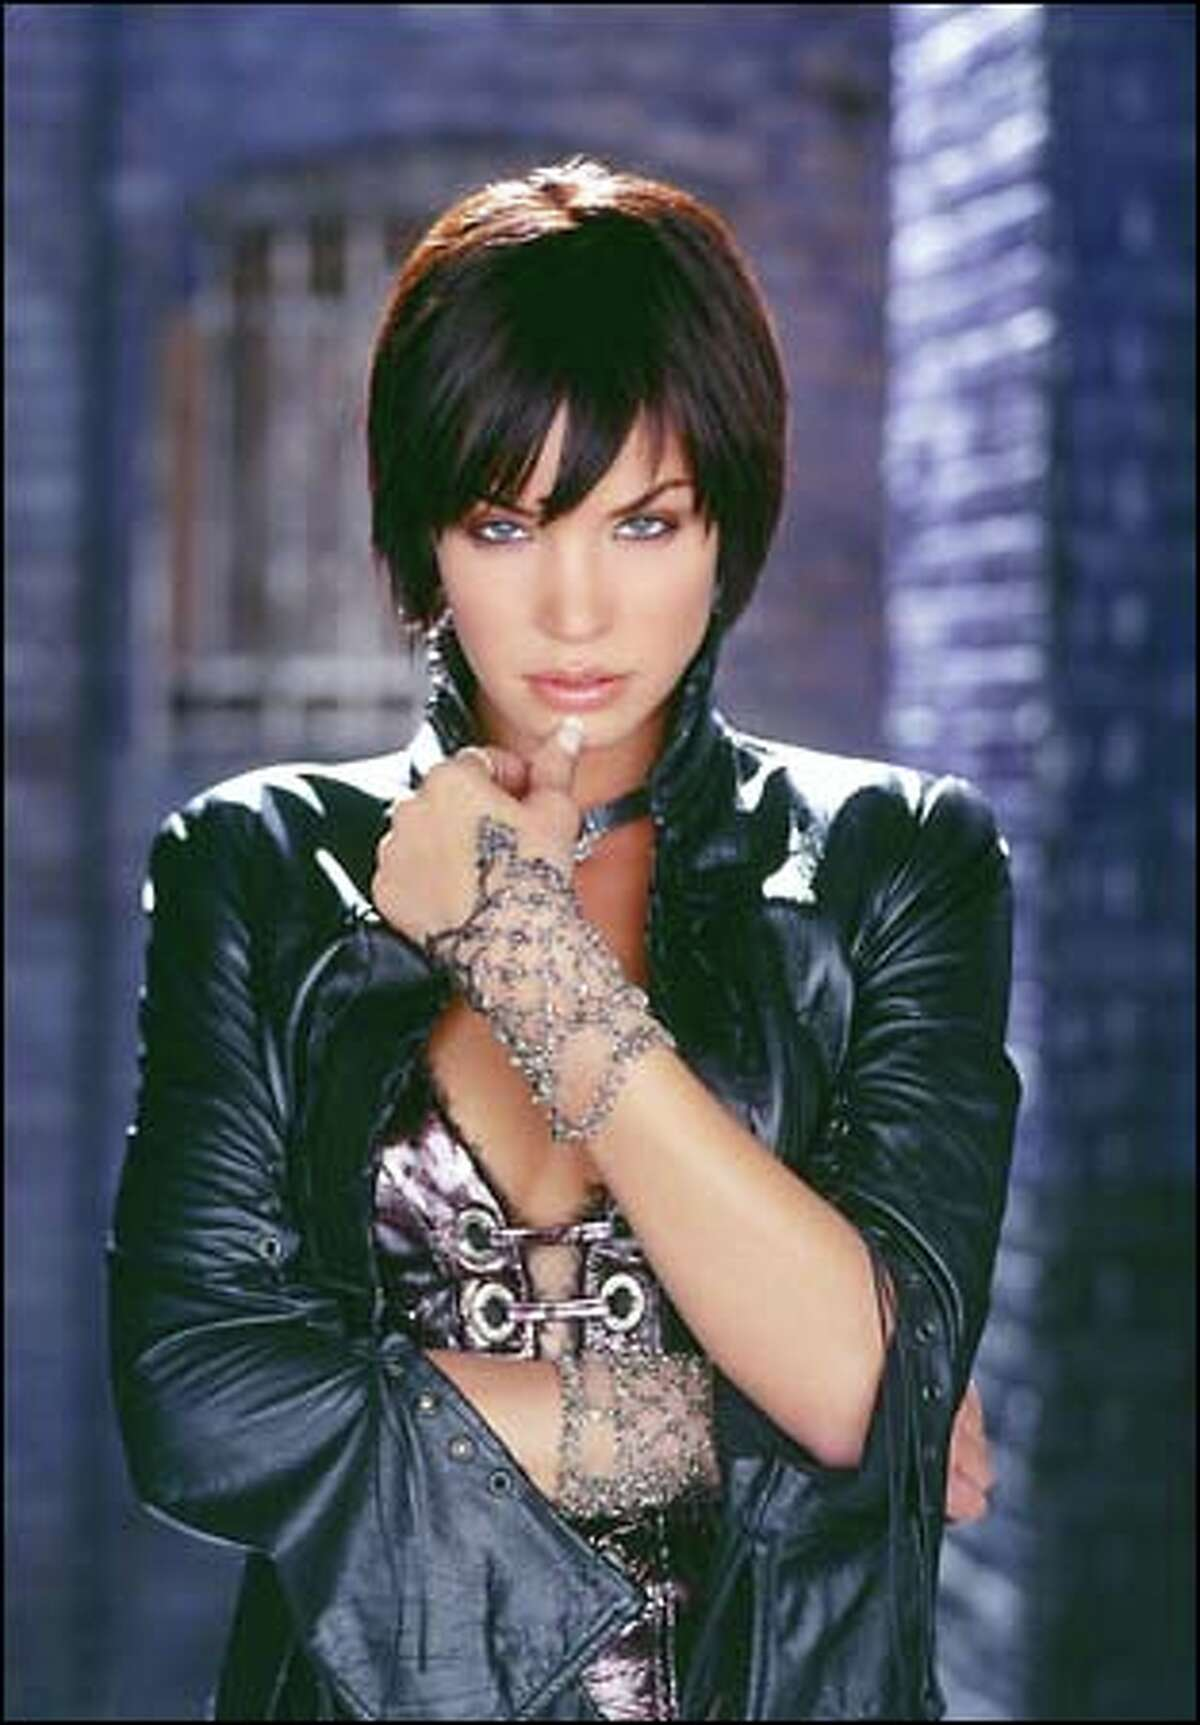 Ashley Scott plays Helena Kyle, also known as the Huntress, the daughter of Batman and Catwoman -- superhumanly strong, swift and agile. As you can see, the character has received a makeover since the pilot.